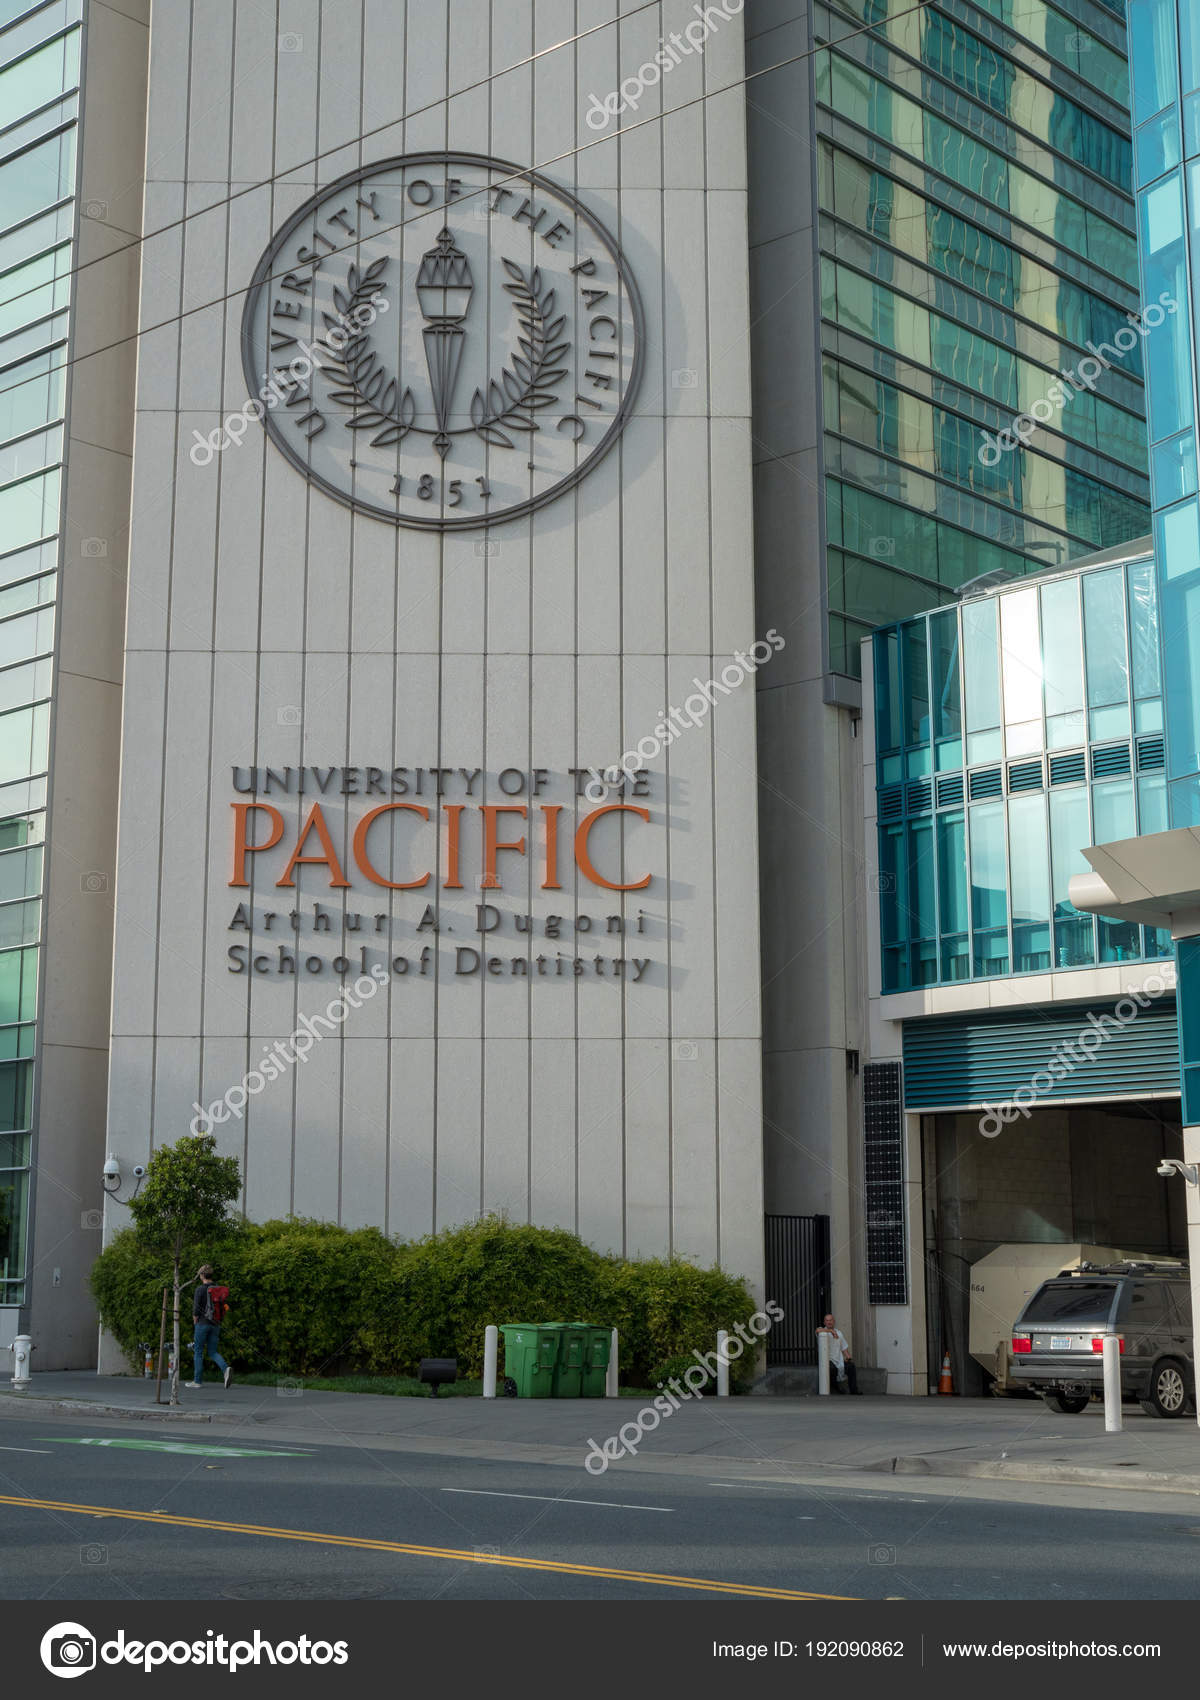 University of the Pacific Dental School campus location